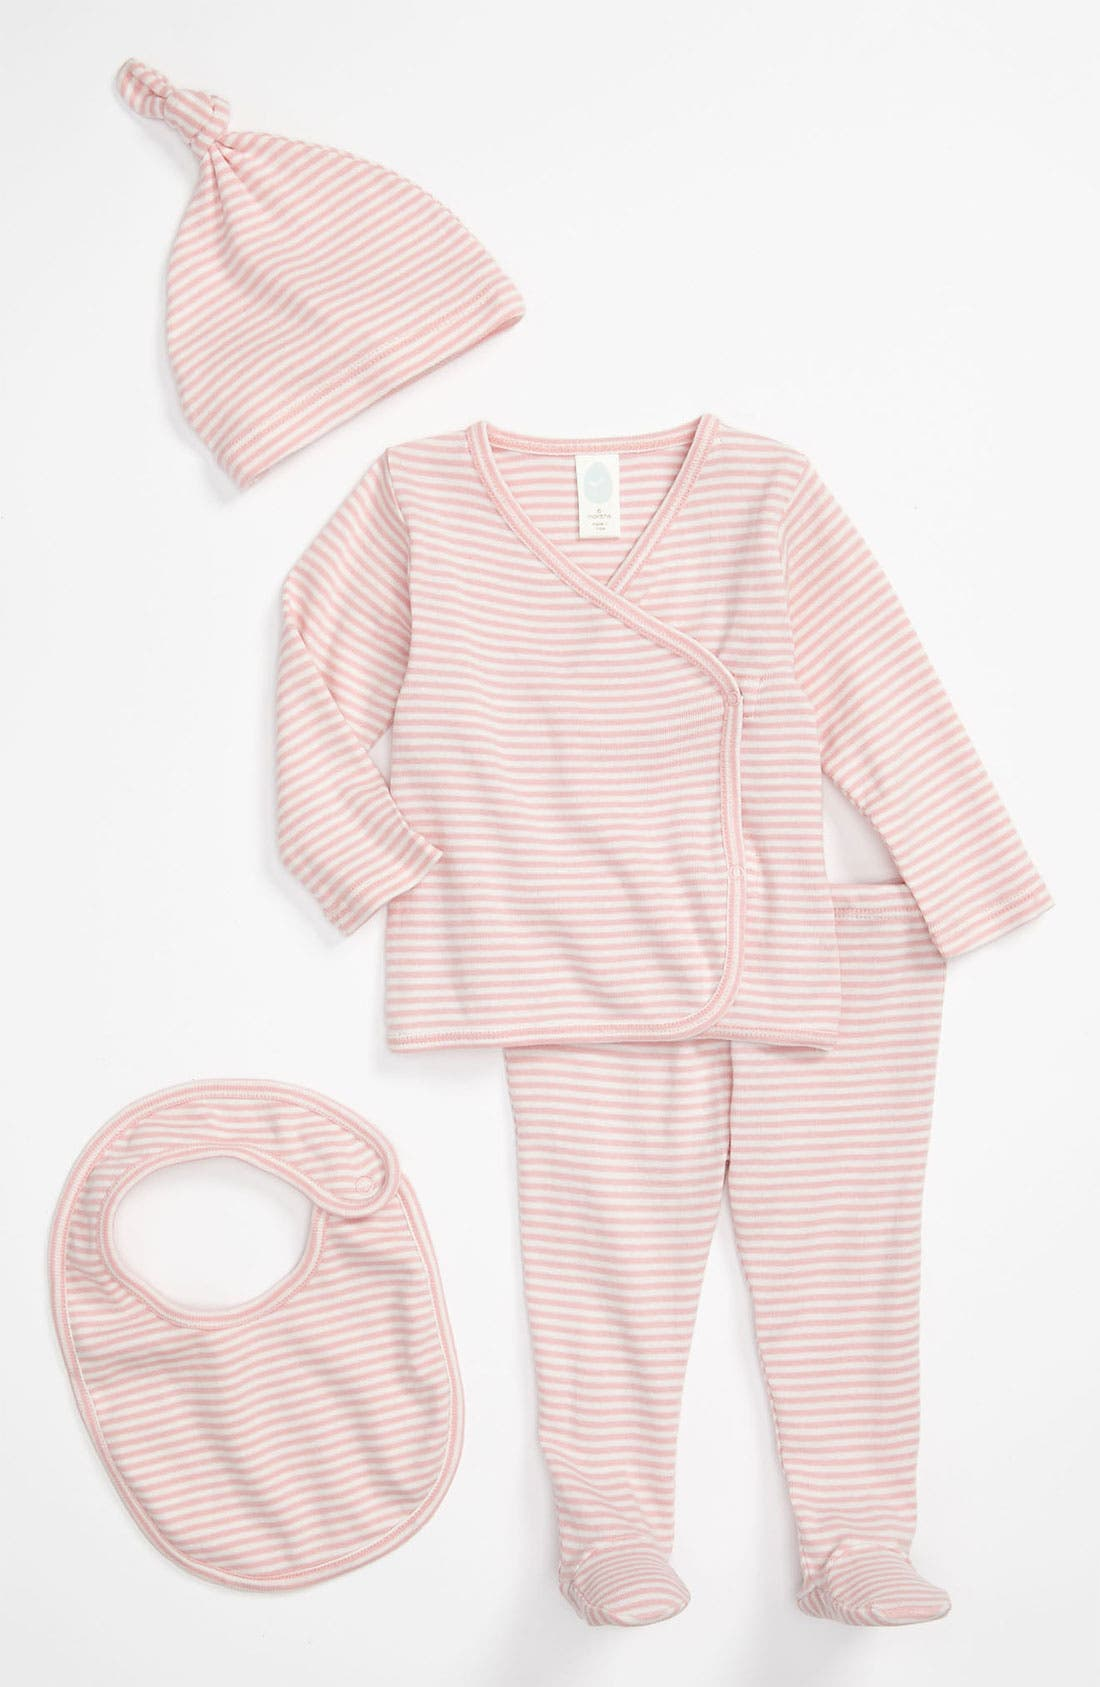 Main Image - Stem Baby Organic Cotton Shirt, Pants, Hat & Bib (Baby)